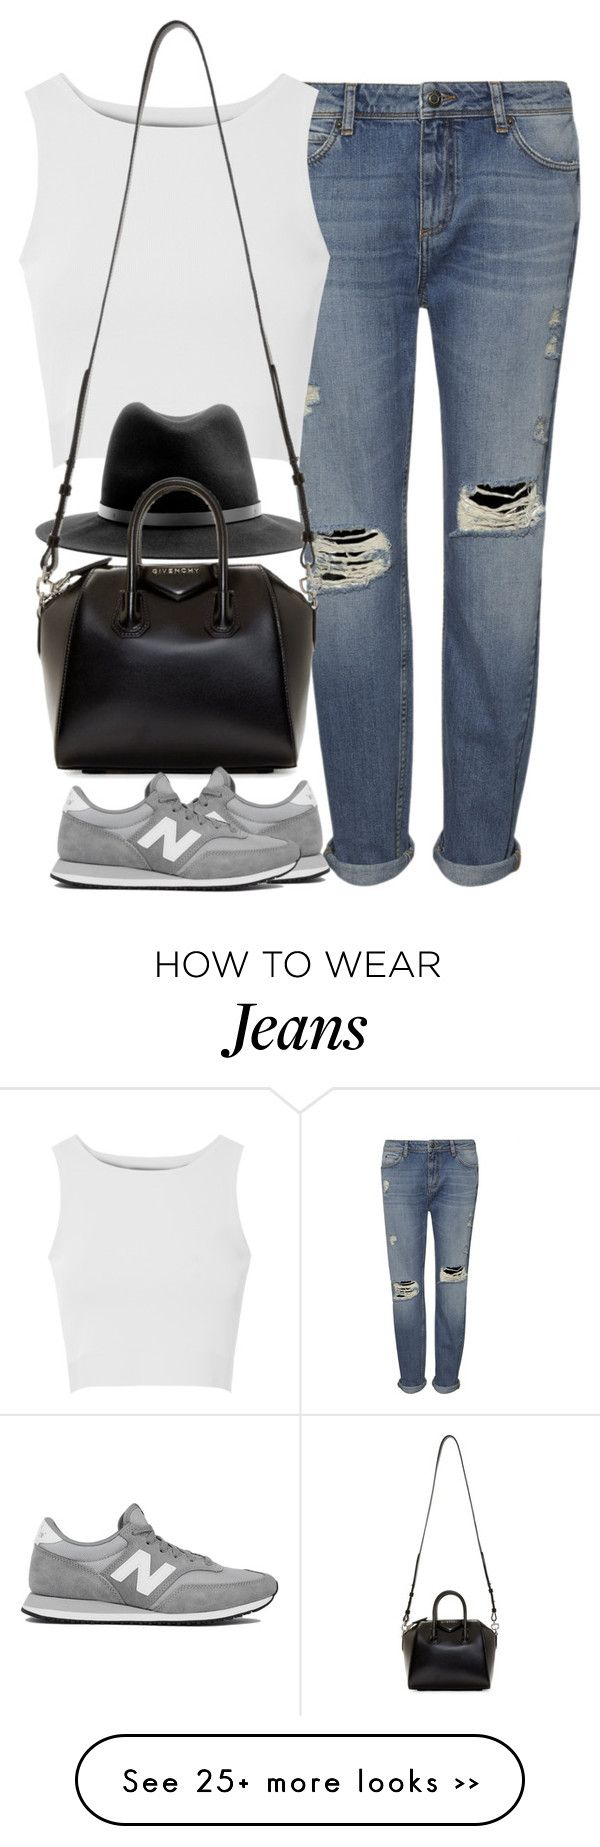 """Untitled #3747"" by london-wanderlust on Polyvore featuring Whistles, Glamorous, rag & bone, Givenchy and New Balance"